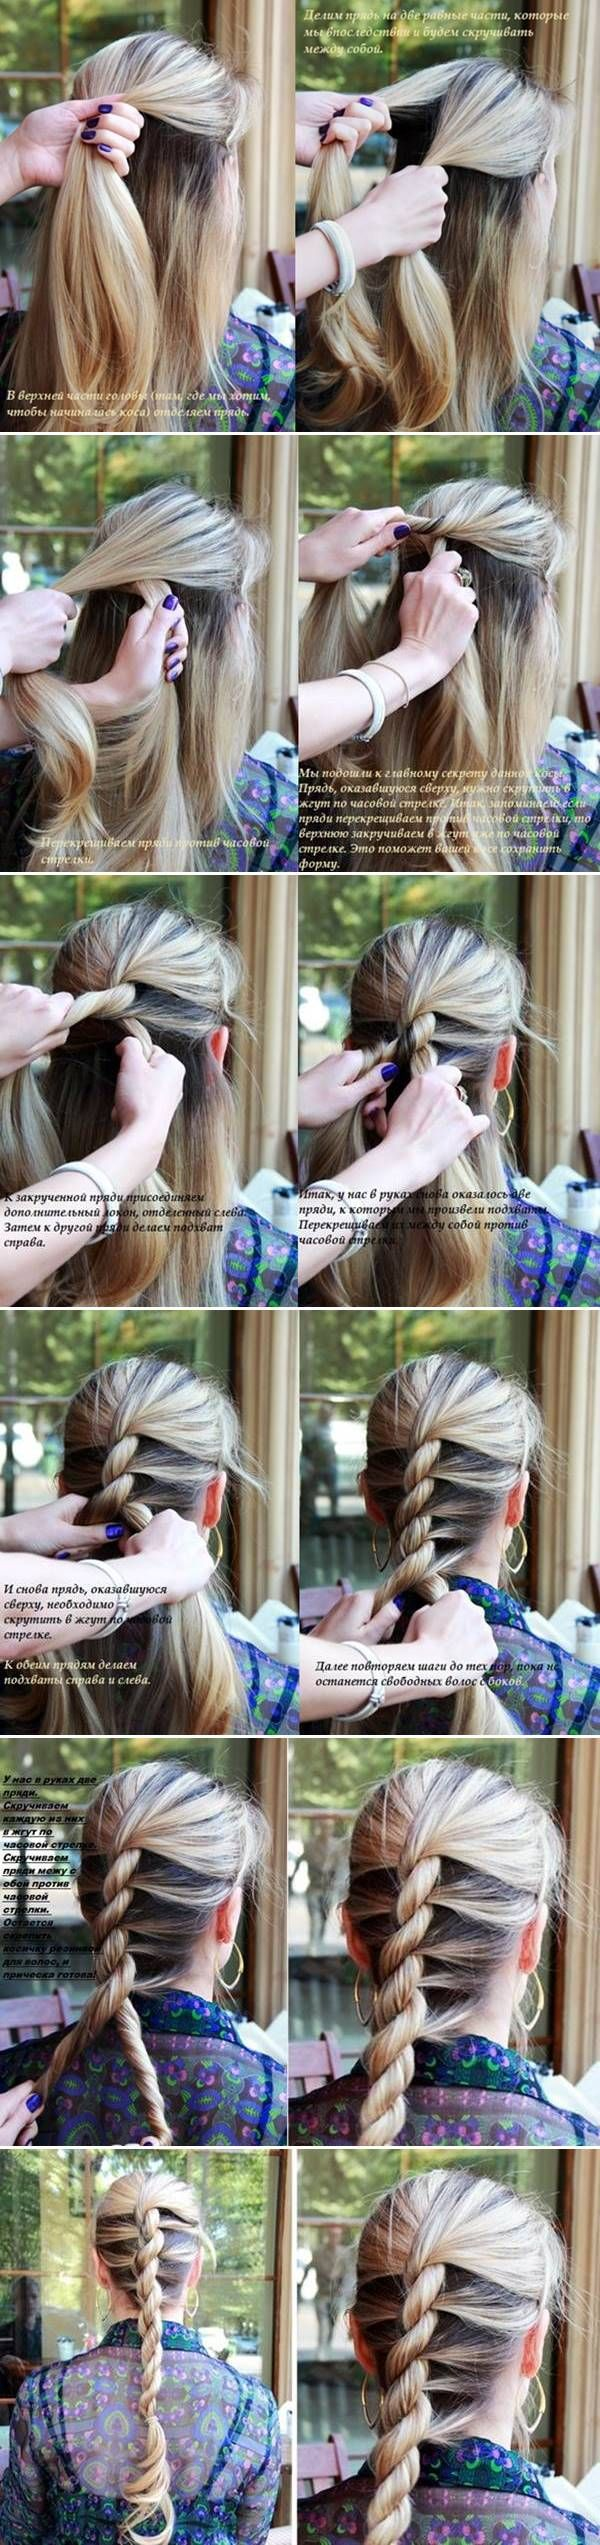 How to DIY Twisted Rope Braid Hairstyle #fashion #hairstyle